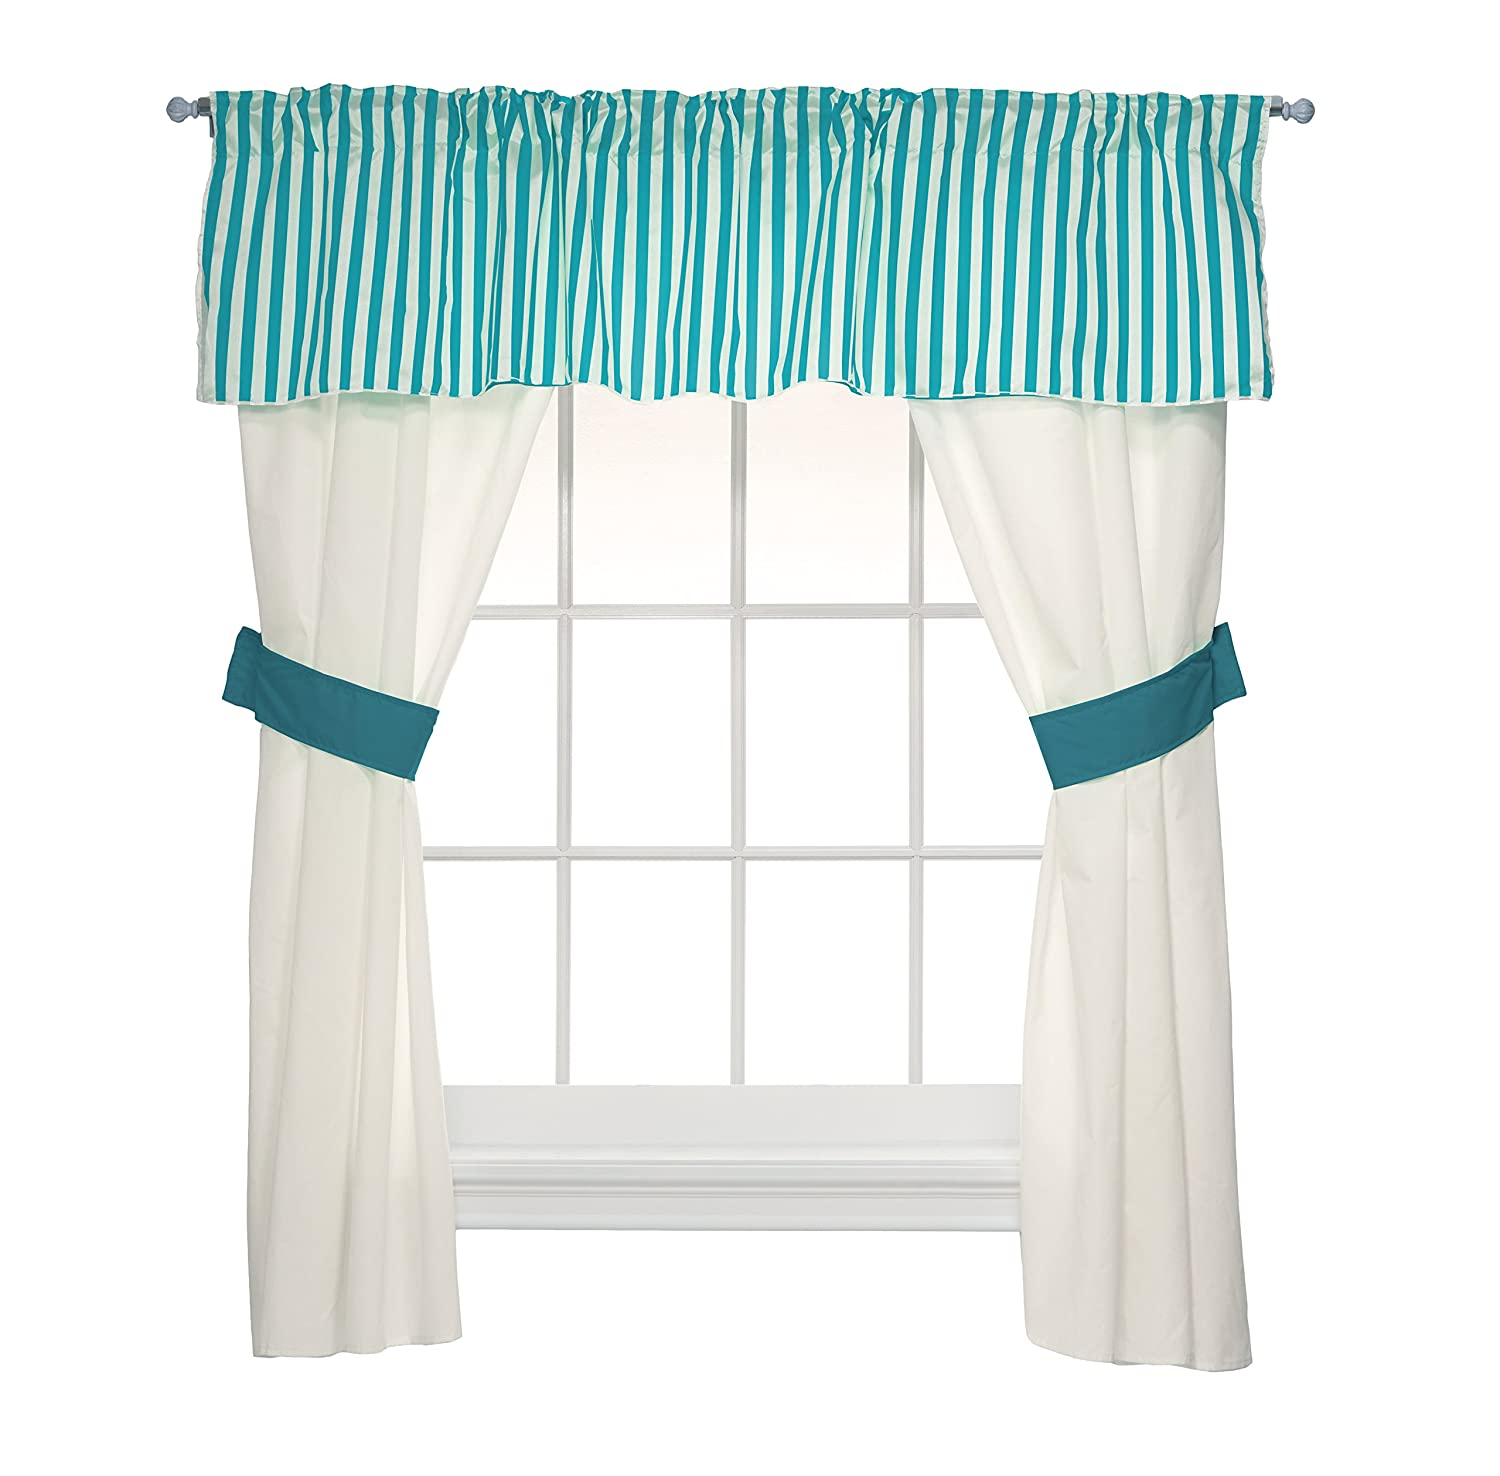 BabyDoll Bedding Regal Window Valance Navy